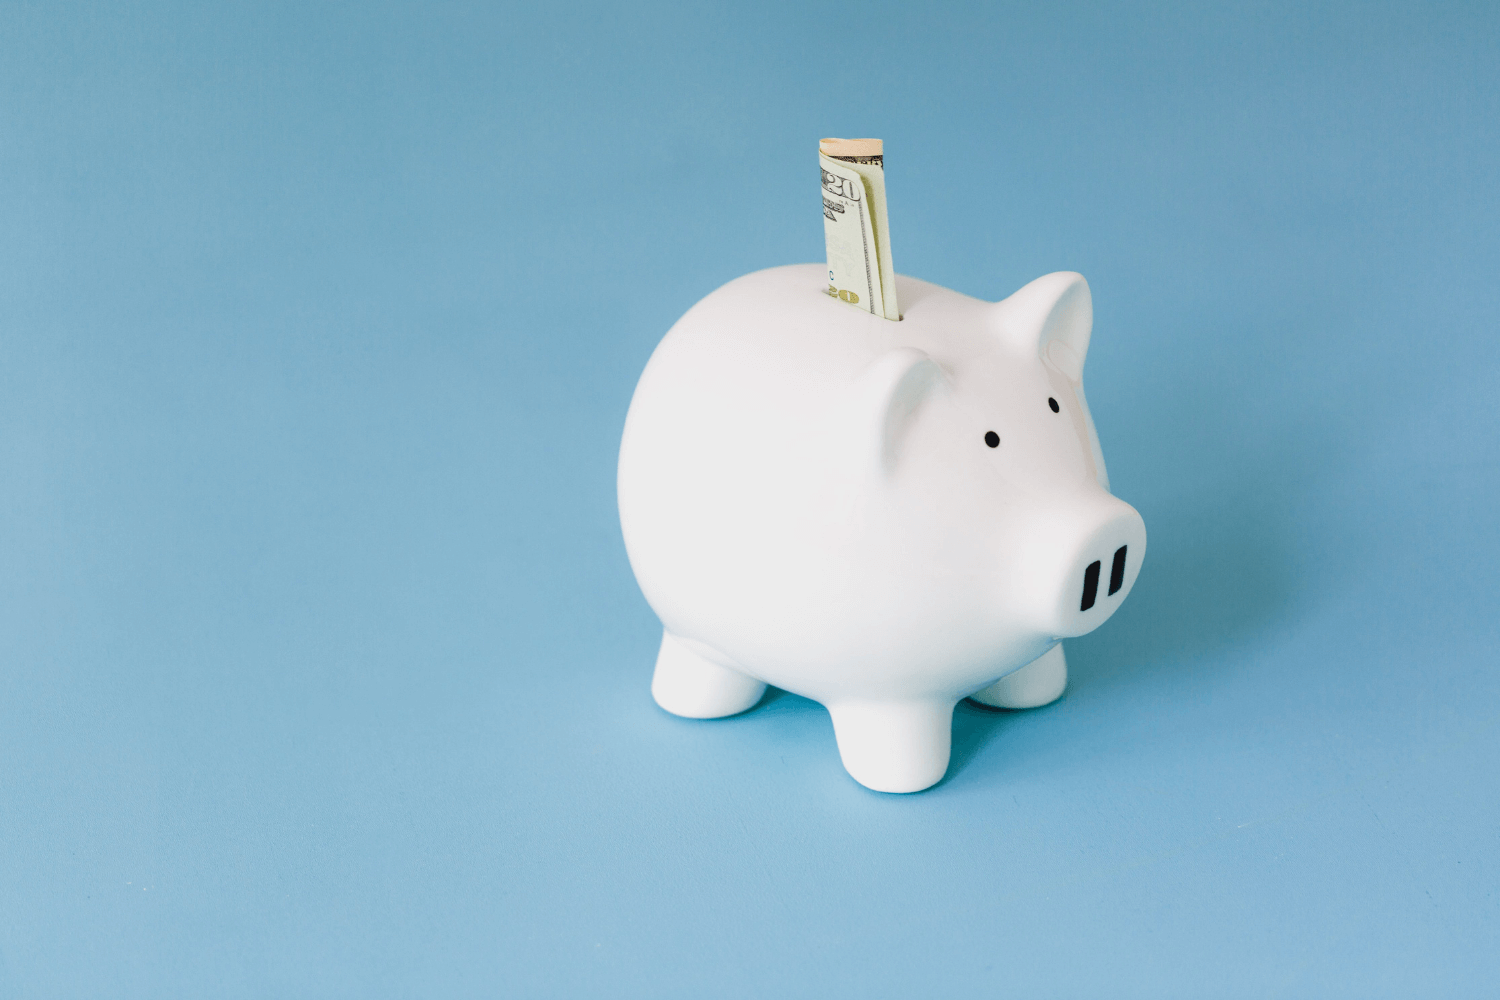 A piggy bank with money sticking out of it on a blue background